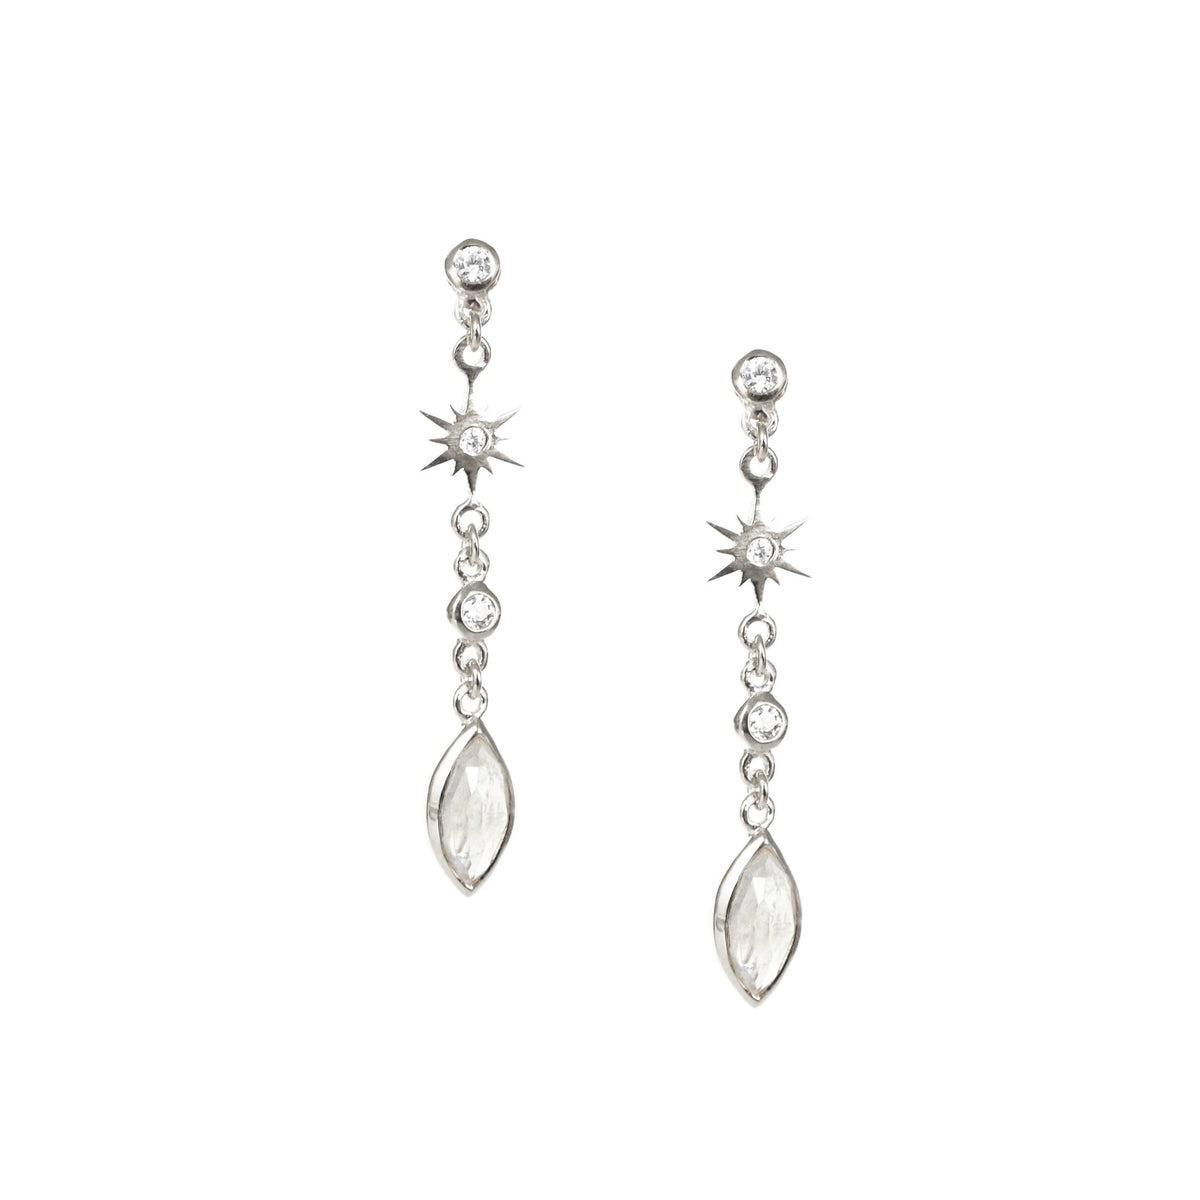 TINY BELIEVE MARQUISE DROP EARRINGS - CUBIC ZIRCONIA, MOONSTONE & SILVER - SO PRETTY CARA COTTER